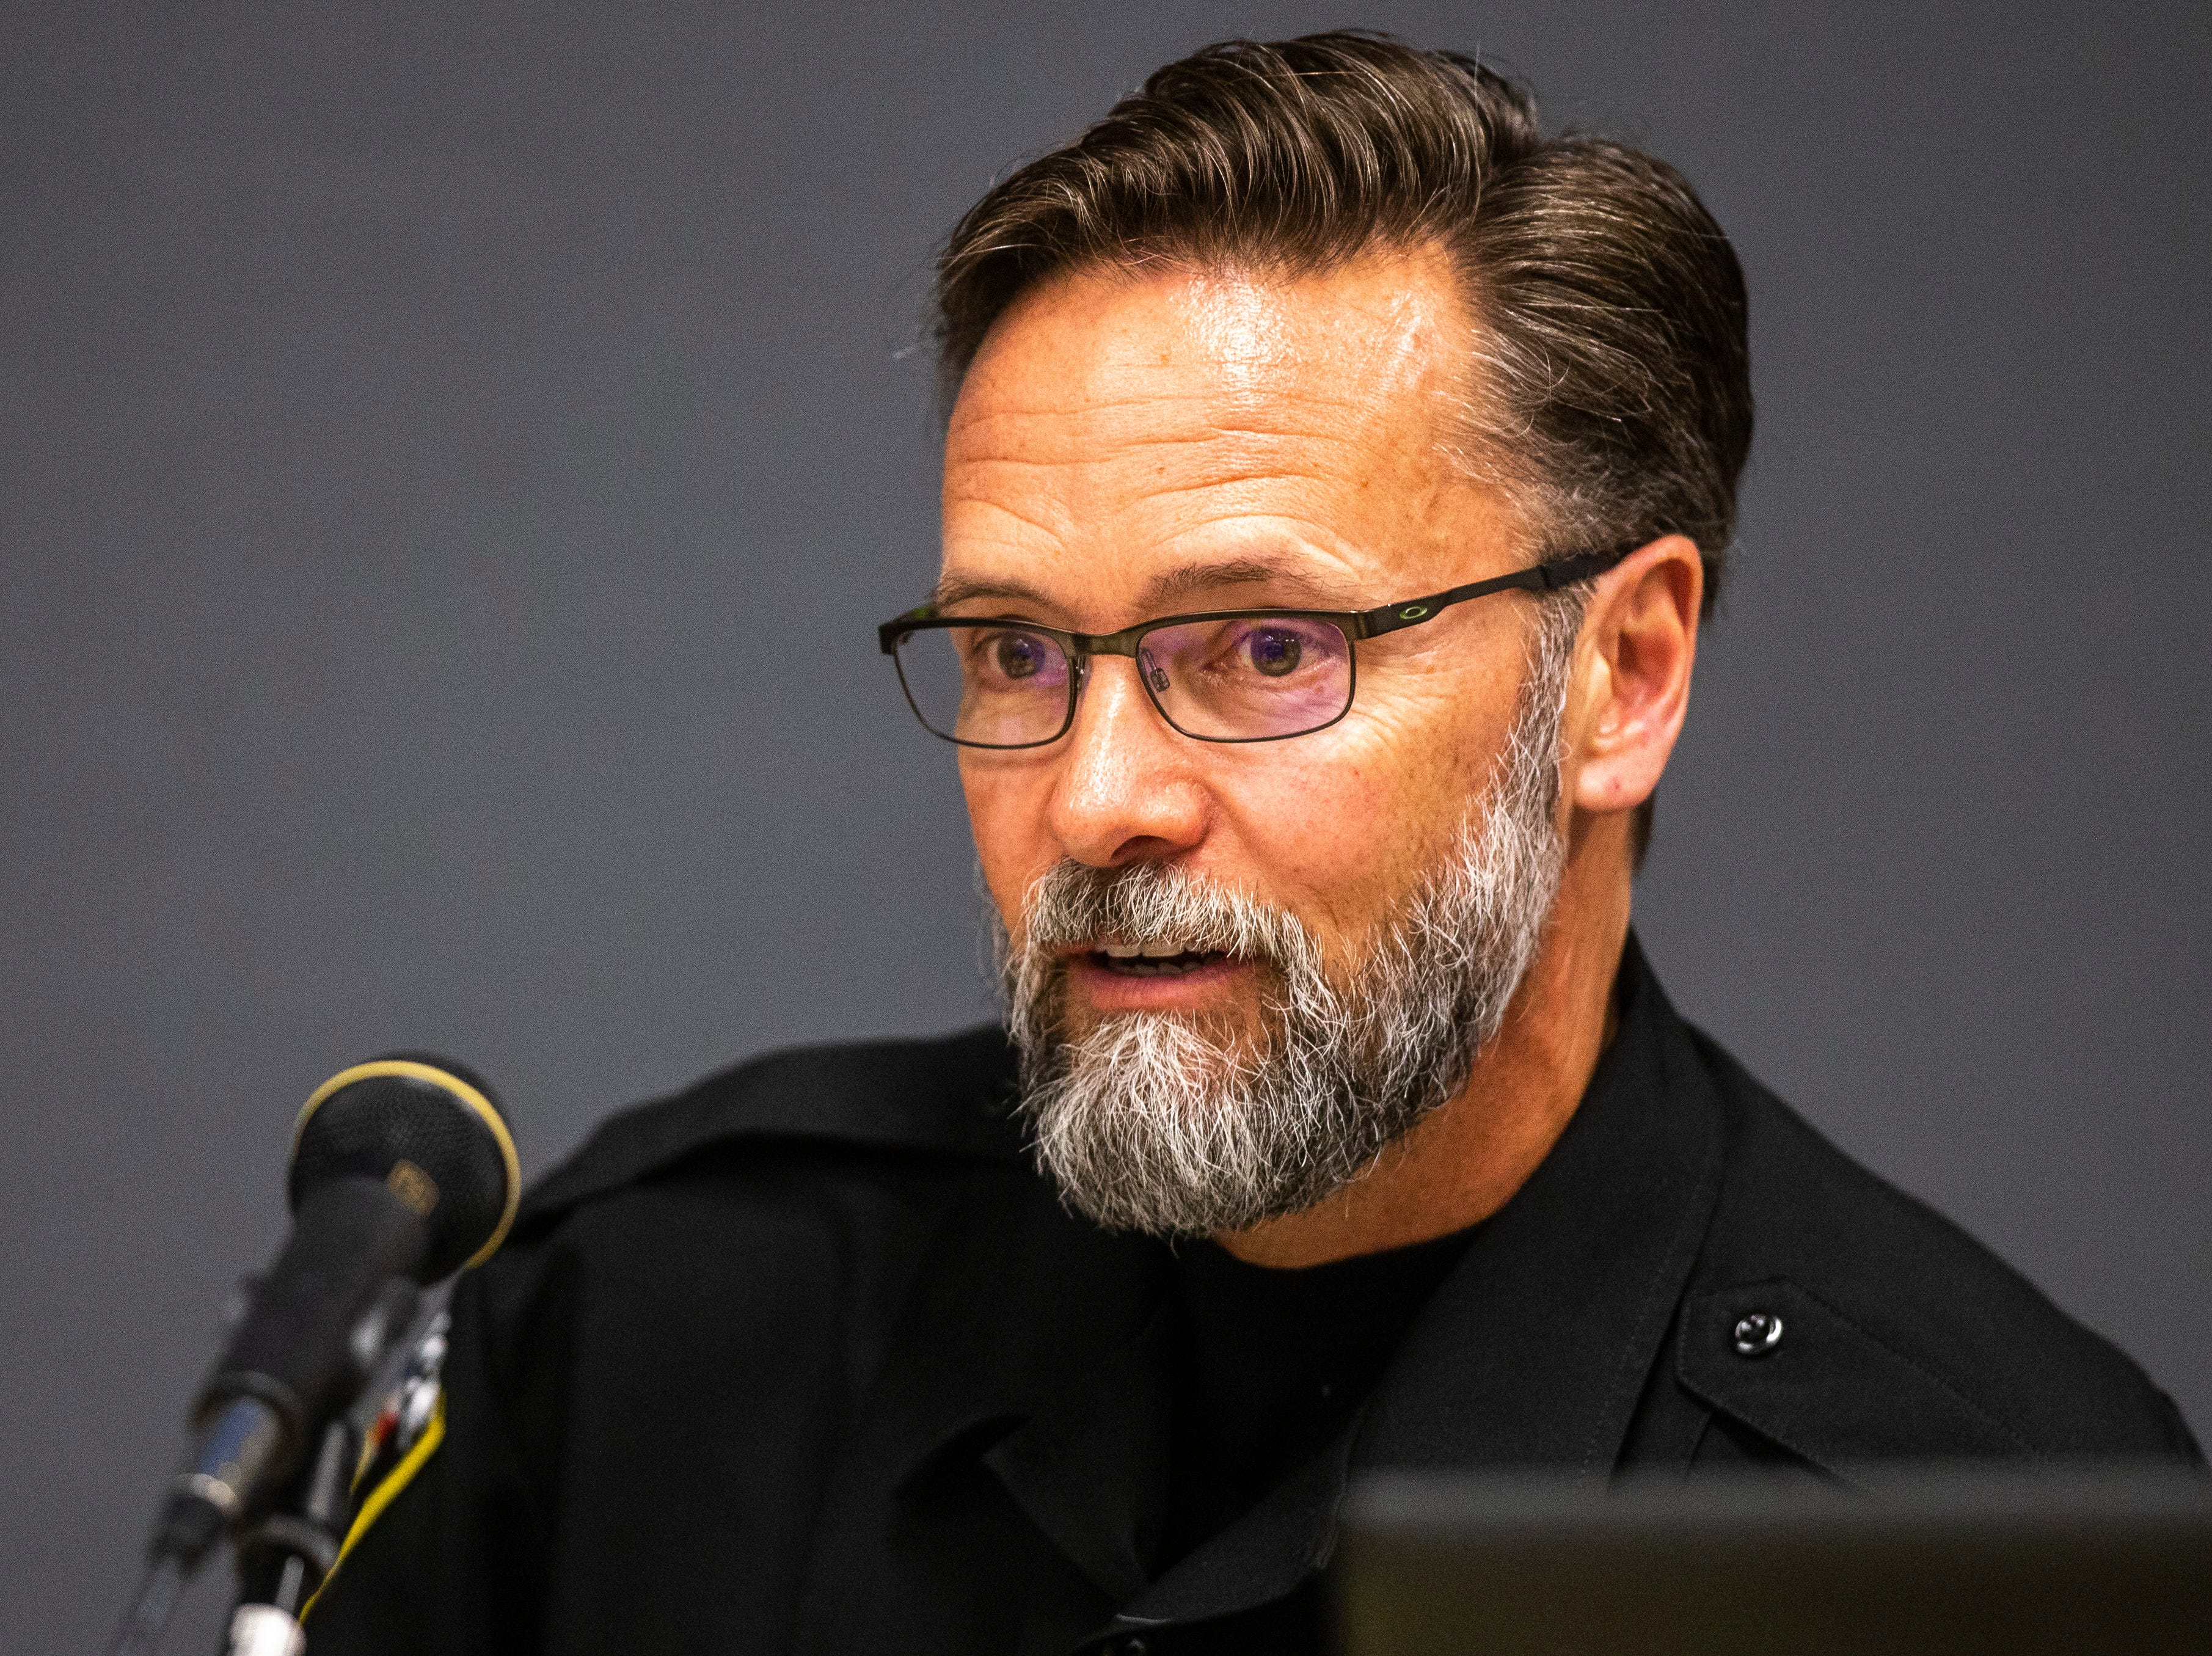 University Heights Police Chief Troy Kelsay speaks, Tuesday, May 14, 2019, at City Hall in University Heights, Iowa.